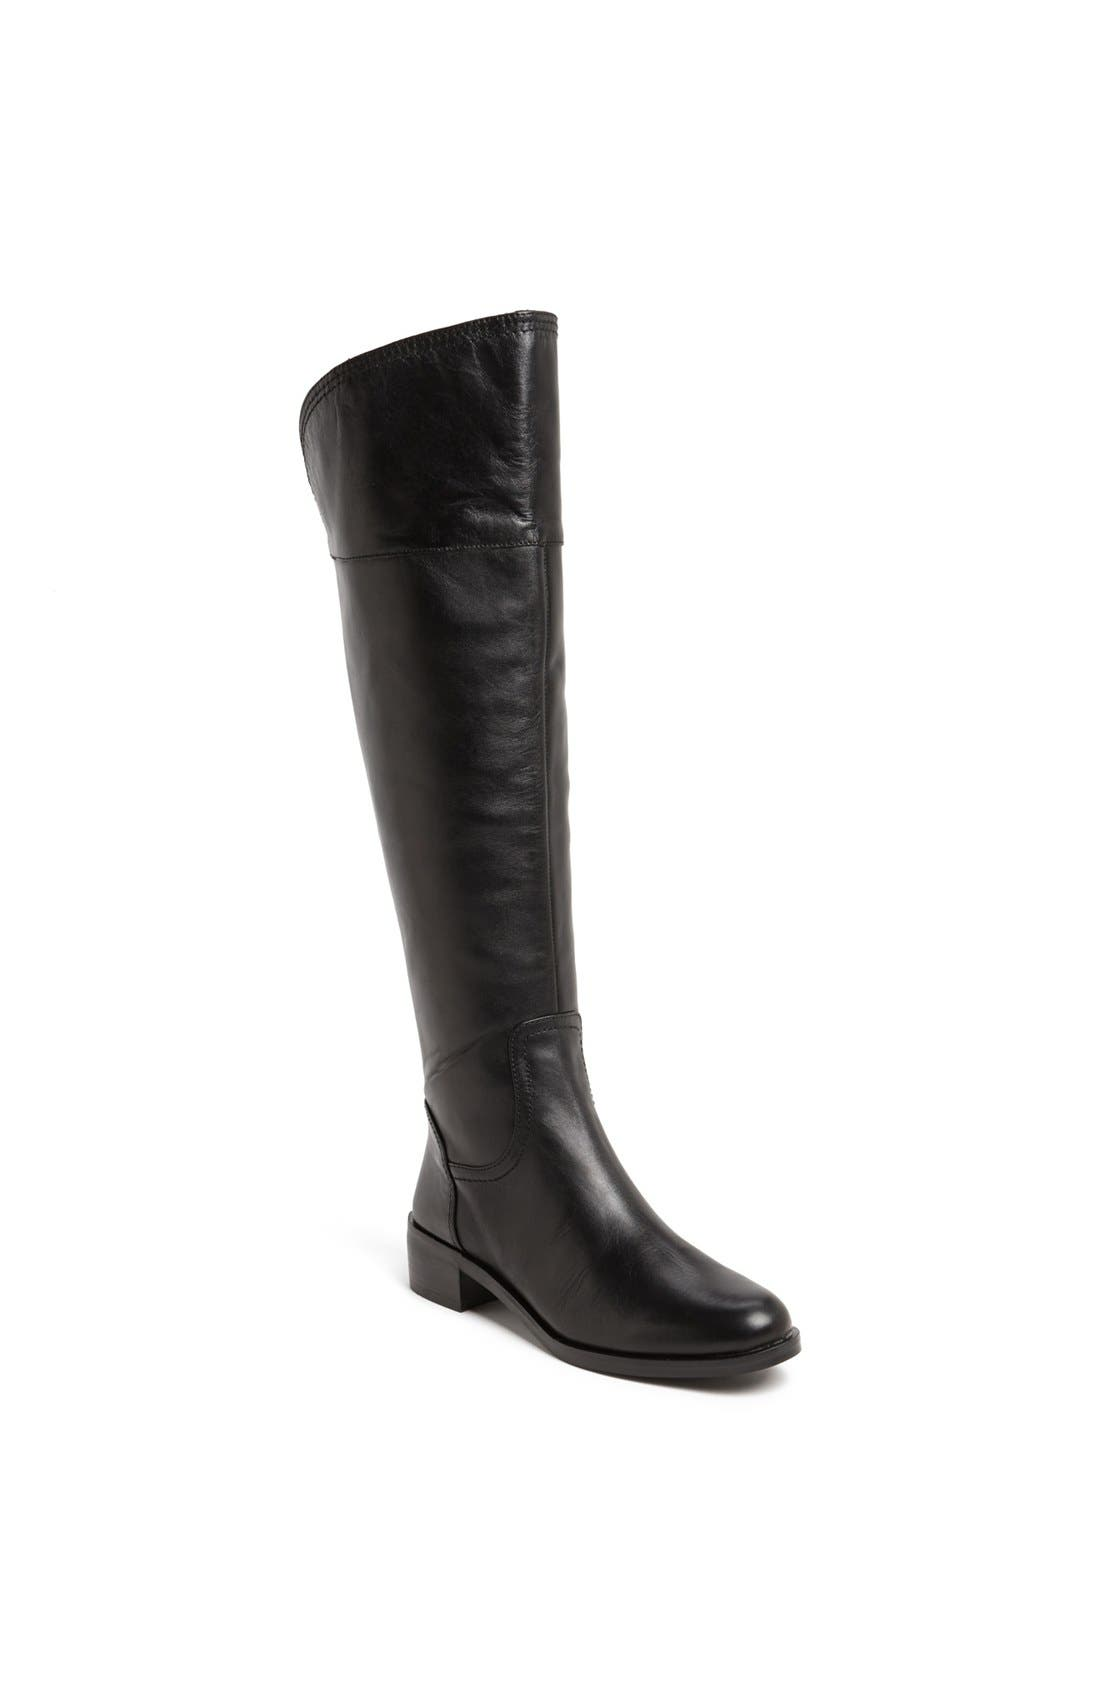 Alternate Image 1 Selected - Vince Camuto 'Vatero' Over the Knee Boot